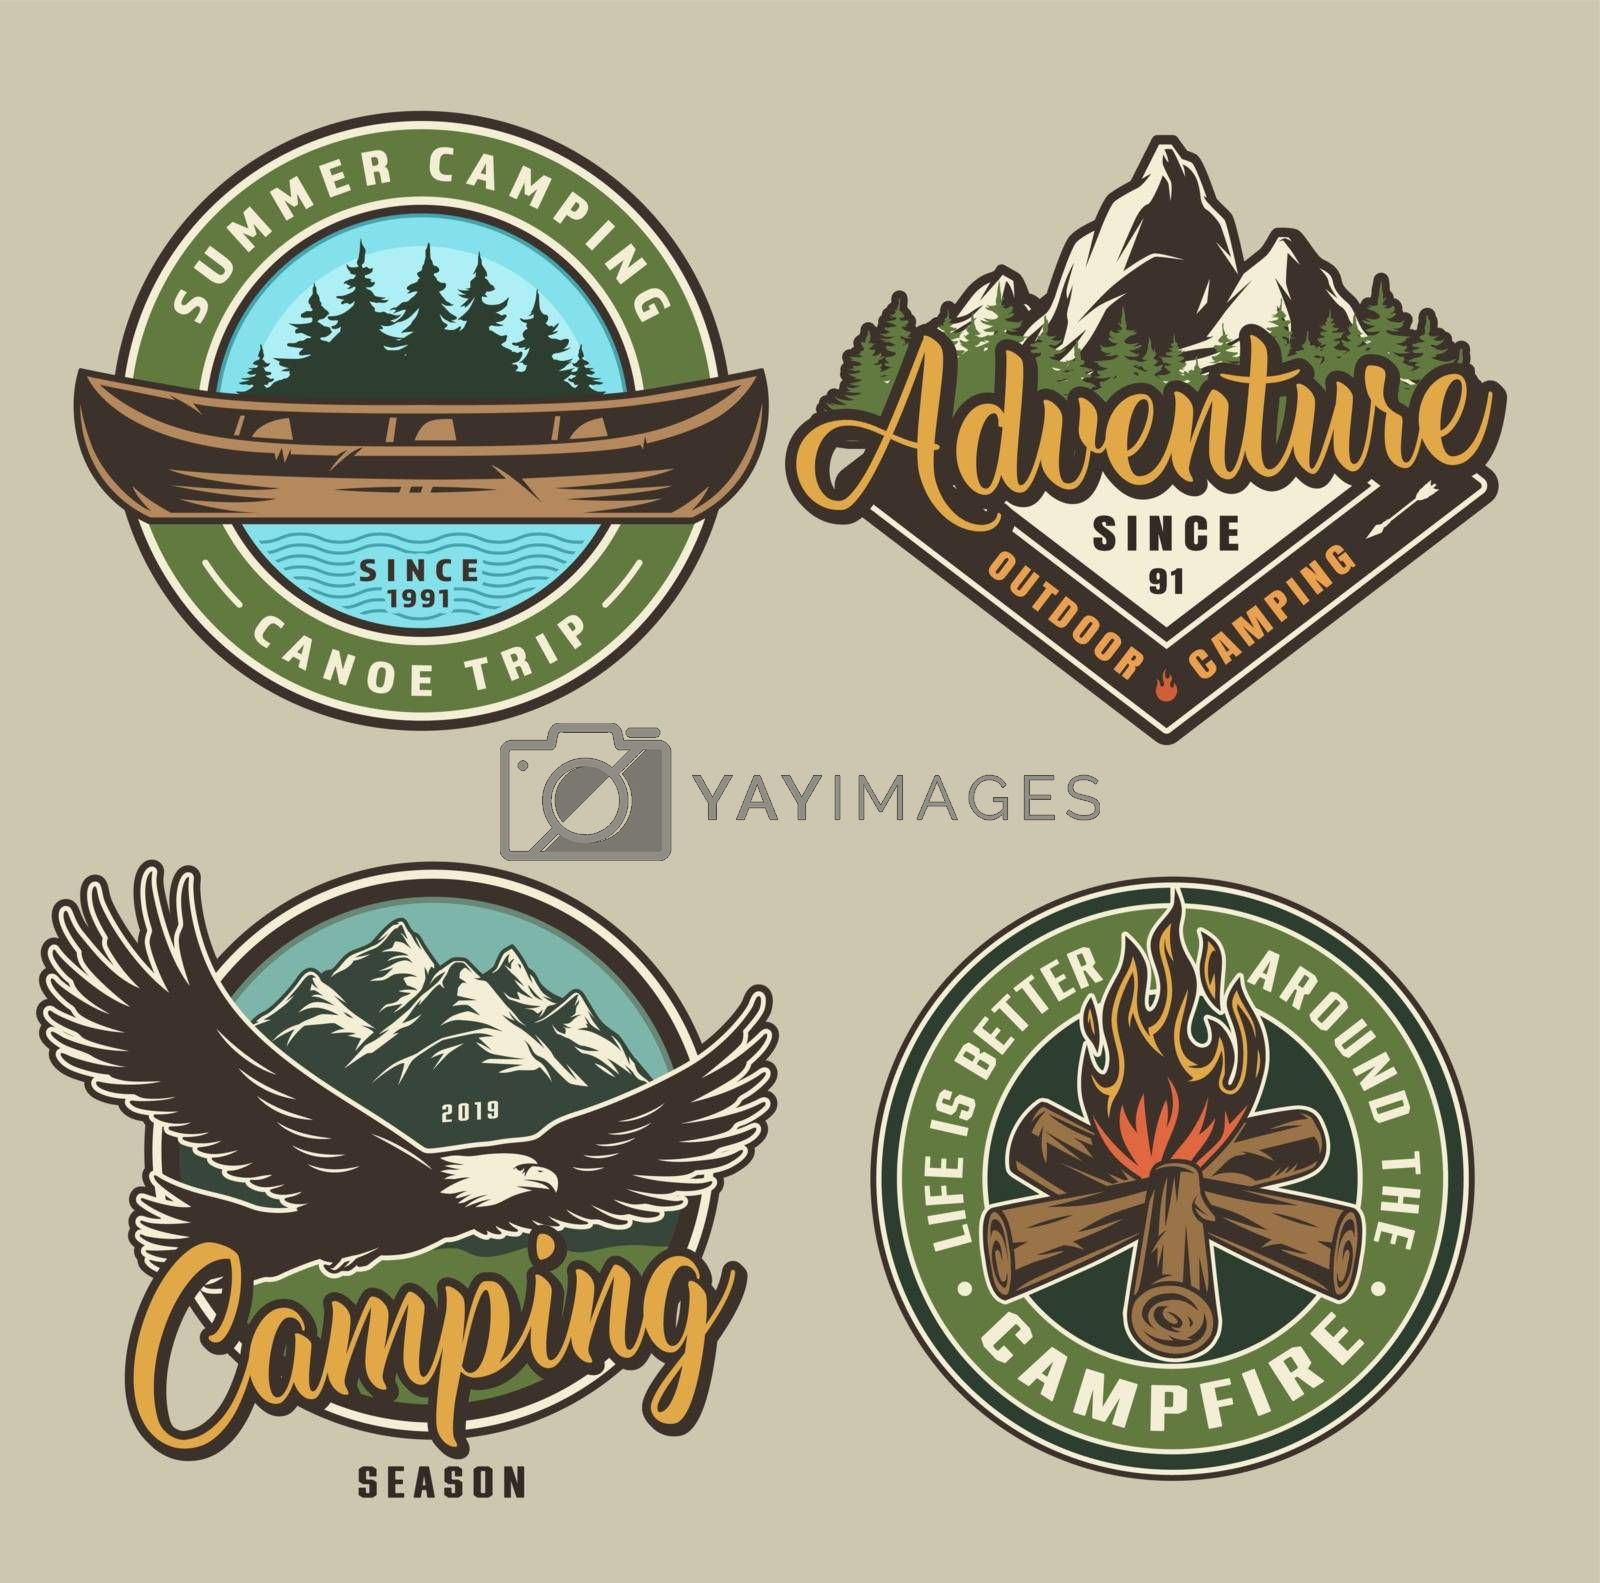 Vintage summer camping colorful prints with canoe flying eagle campfire forest and mountains scenery isolated vector illustration